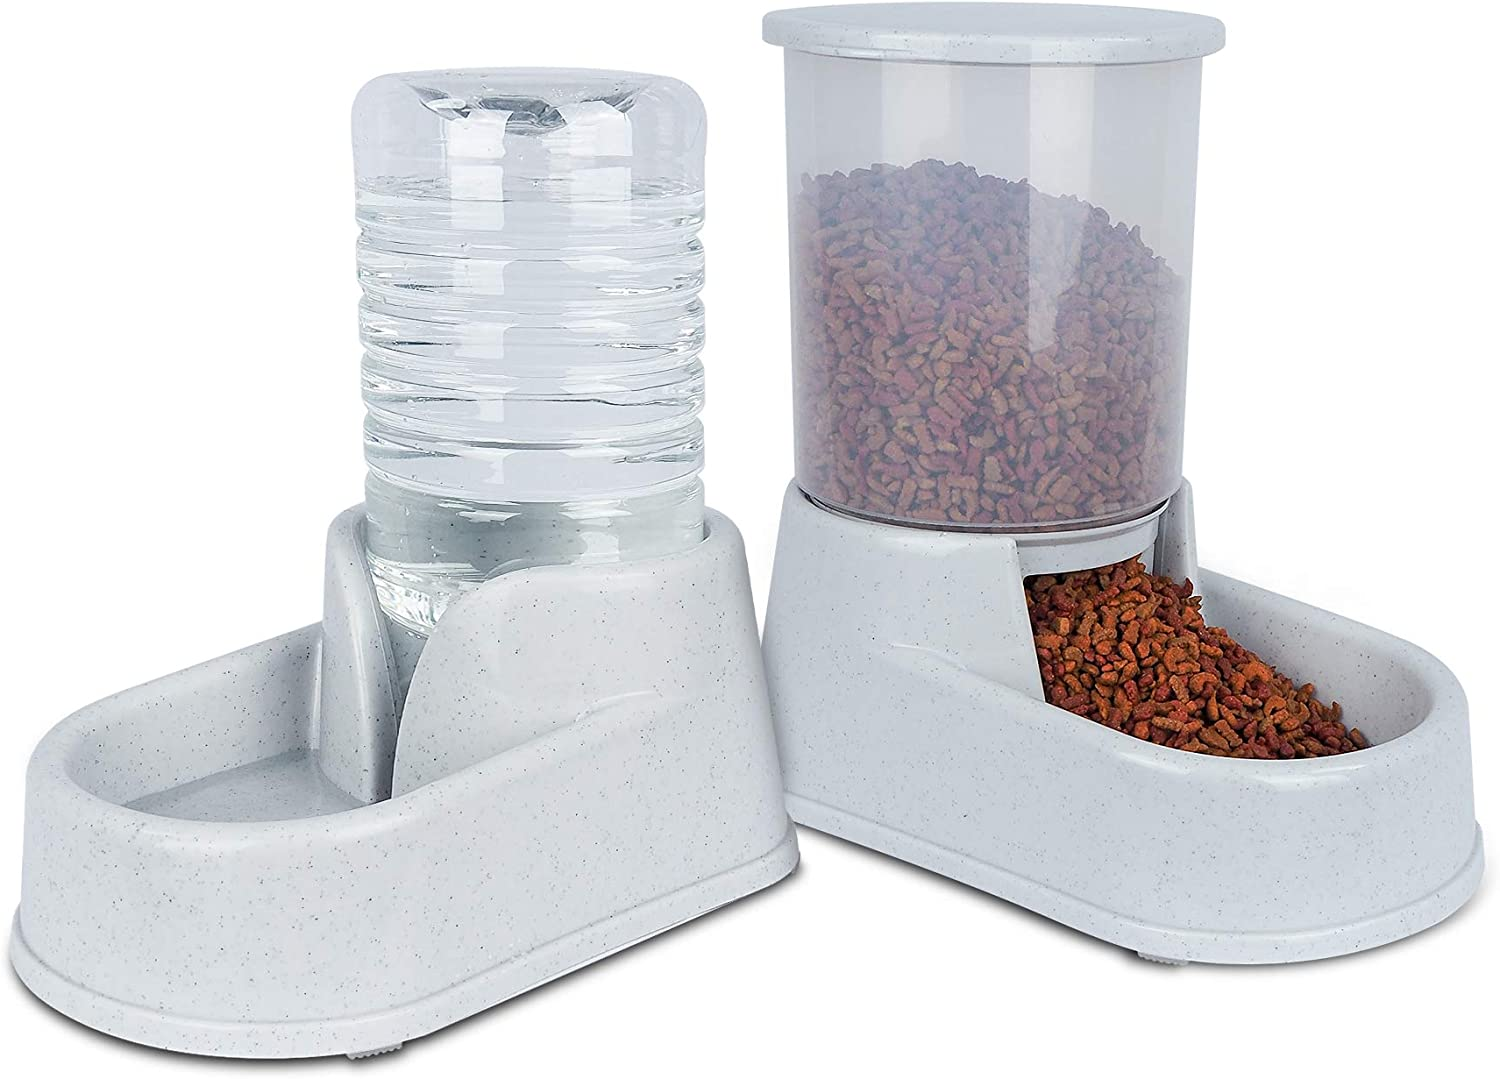 Noodoky Pet Feeder Set, Automatic Cat feeders and 2.5L Waterer, Auto Gravity Water and Food Dispenser for Small Medium Cat Dog